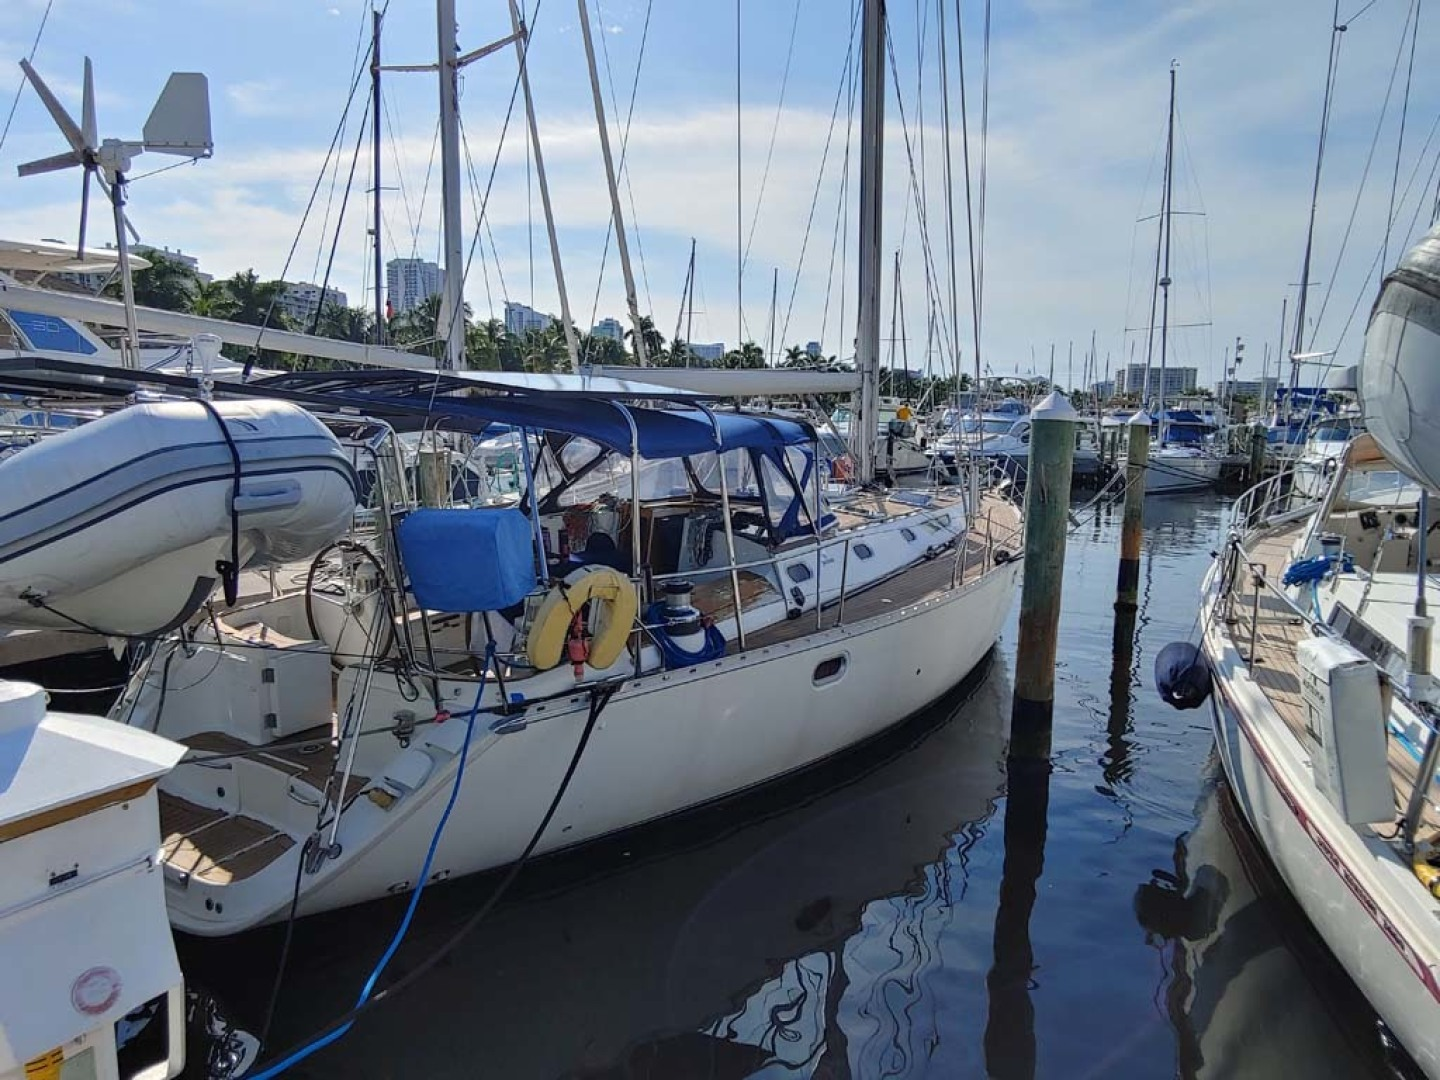 Jeanneau-Sun Odyssey 52.2 2001-Perseverance Hollywood-Florida-United States-Starboard Profile-1631431 | Thumbnail